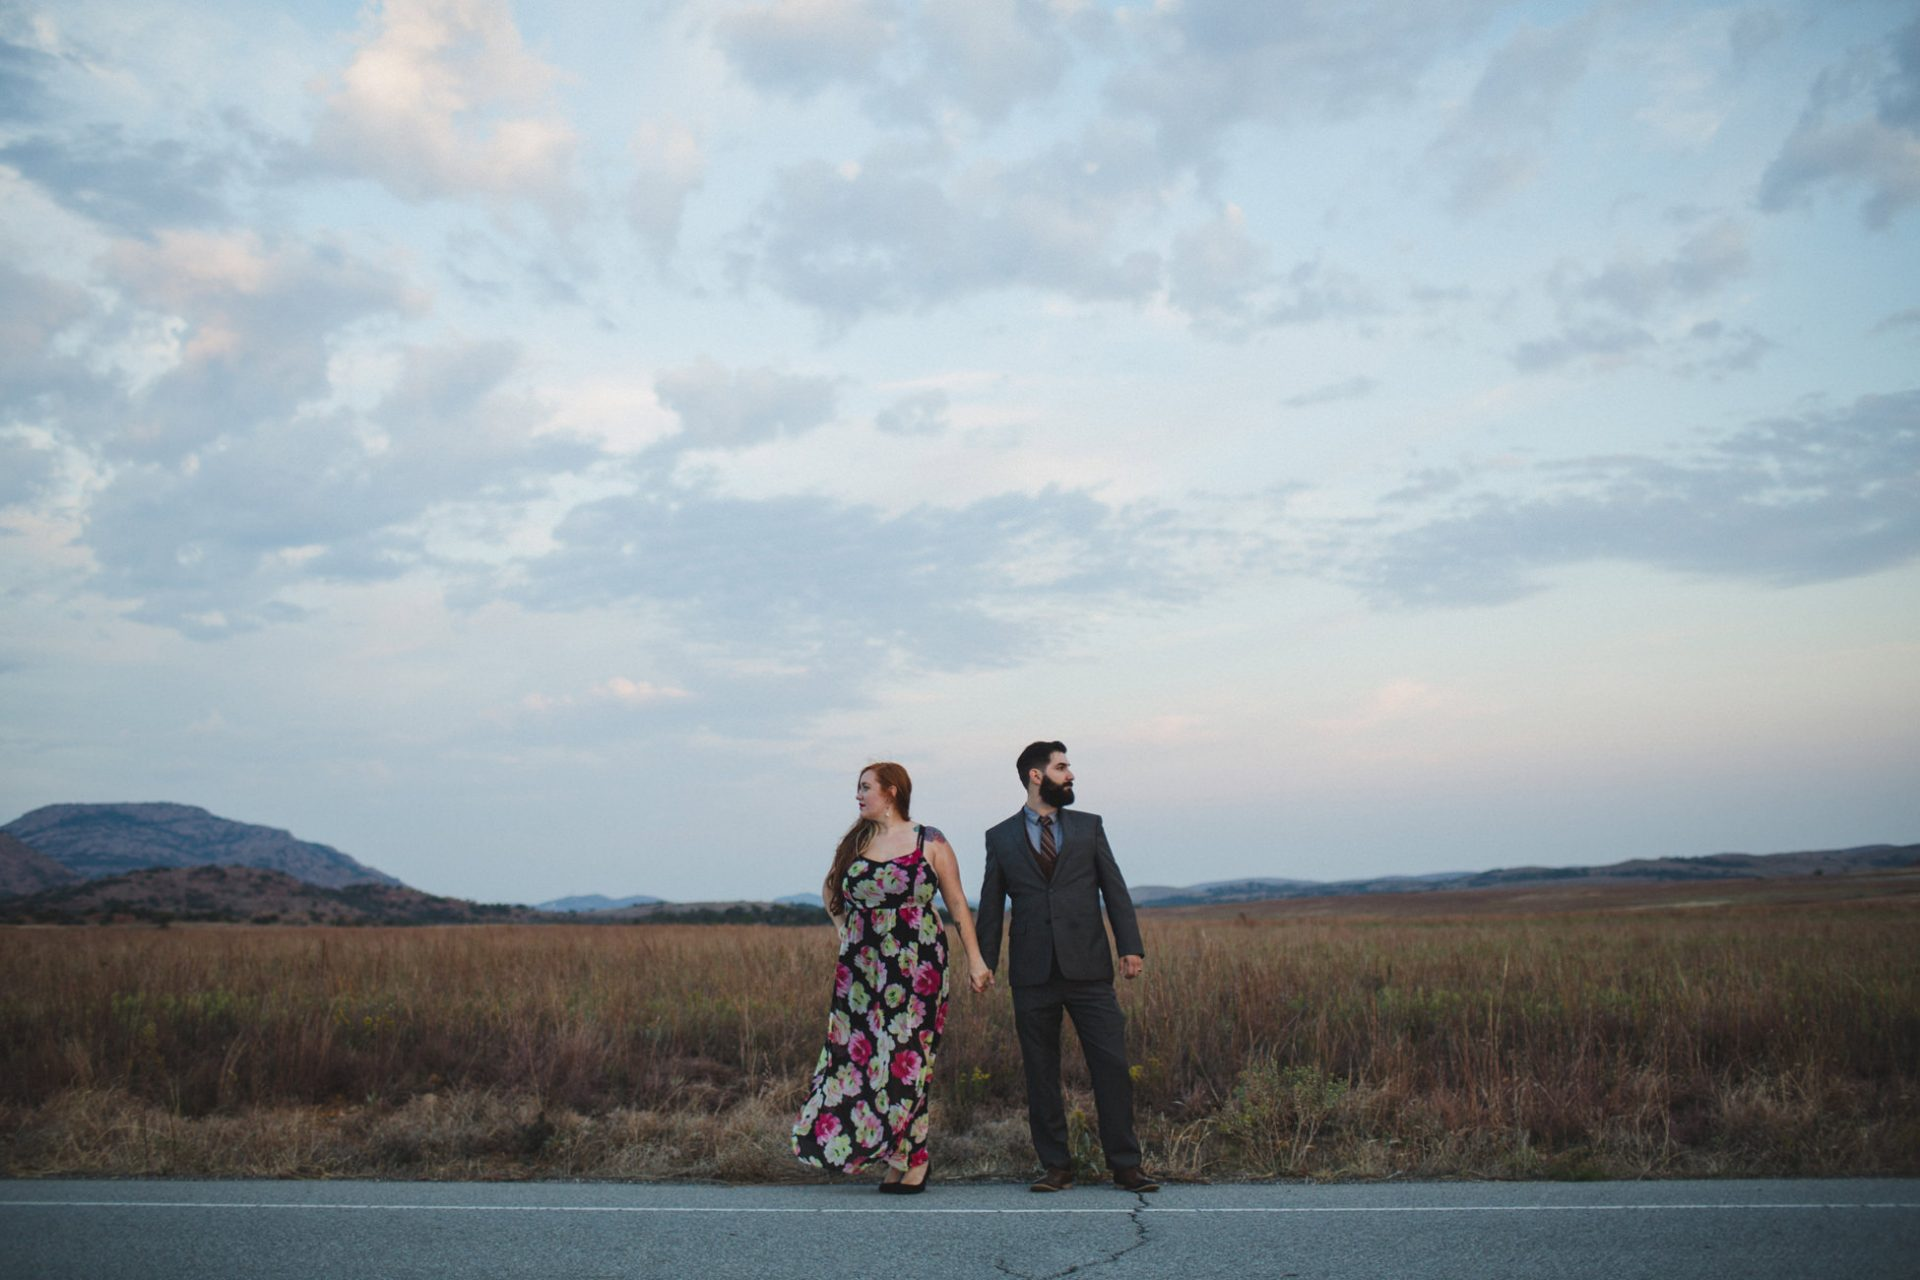 best-top-los-angeles-oklahoma-destination-engagement-photographer-hipster-modern-quirky-editorial-romantic-epic-23-mountains